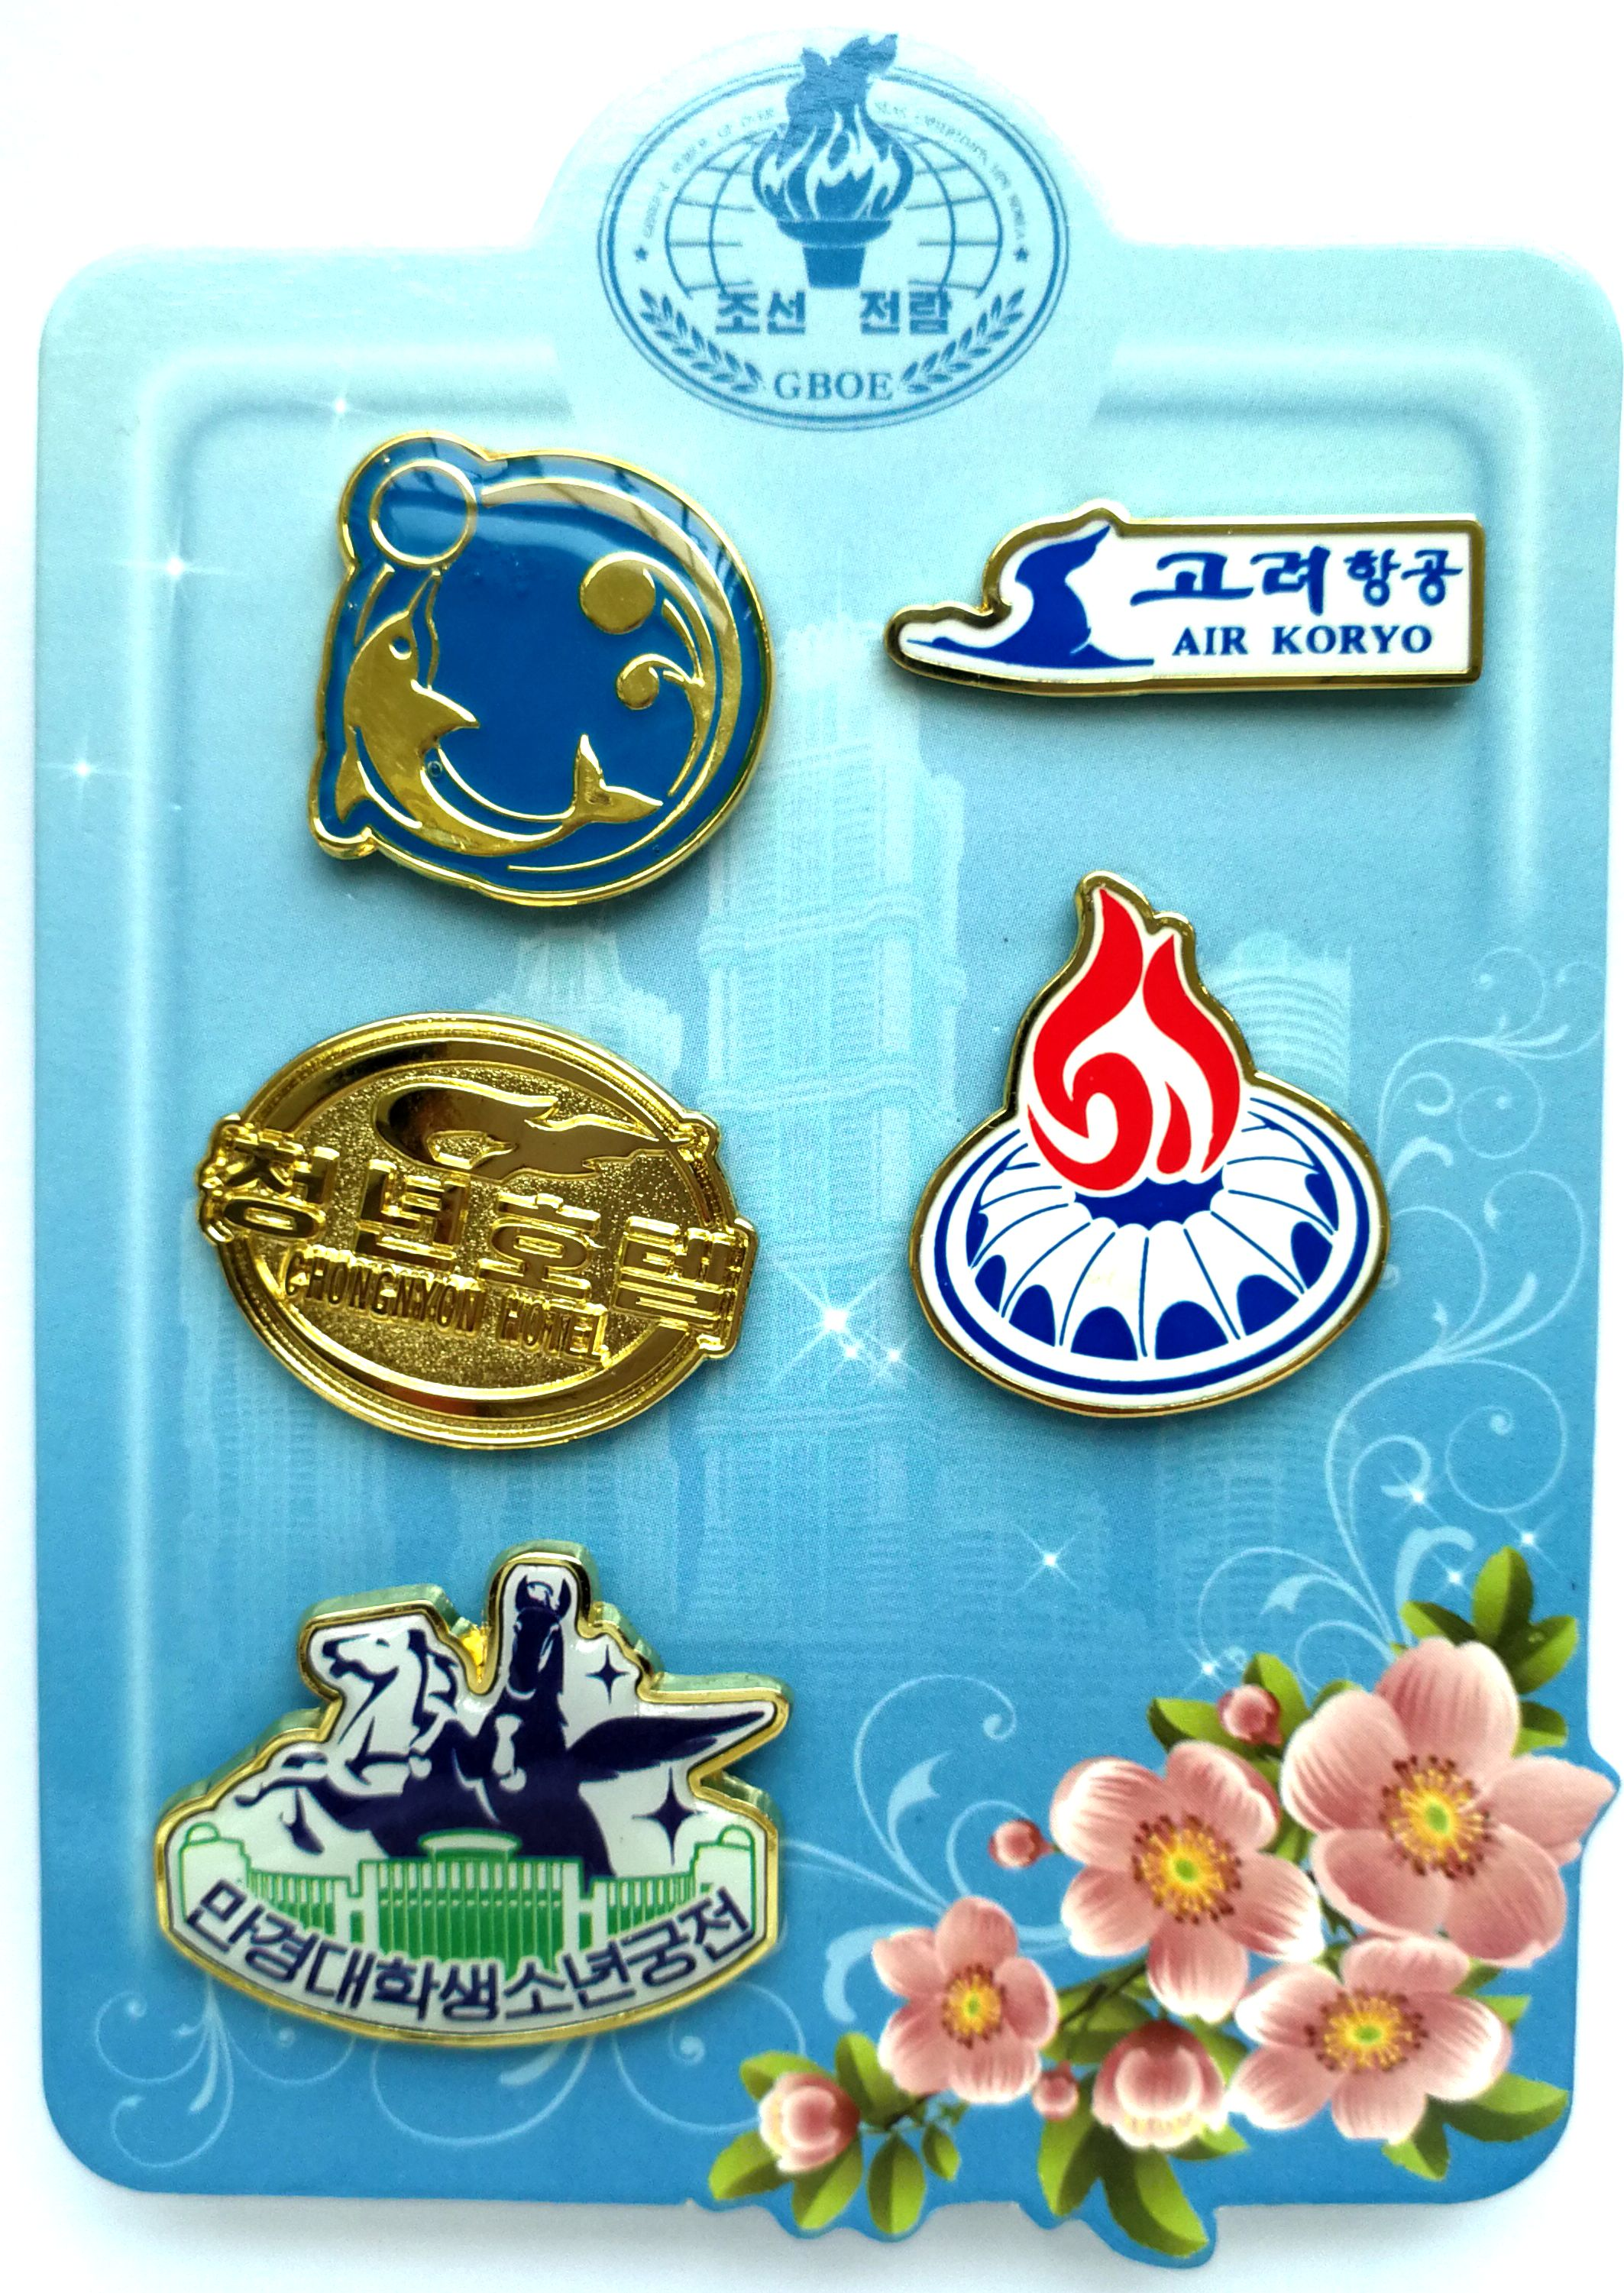 L5483, Korea 2018 Set of 5 Pcs Medal Pins, for 70th Anniversary